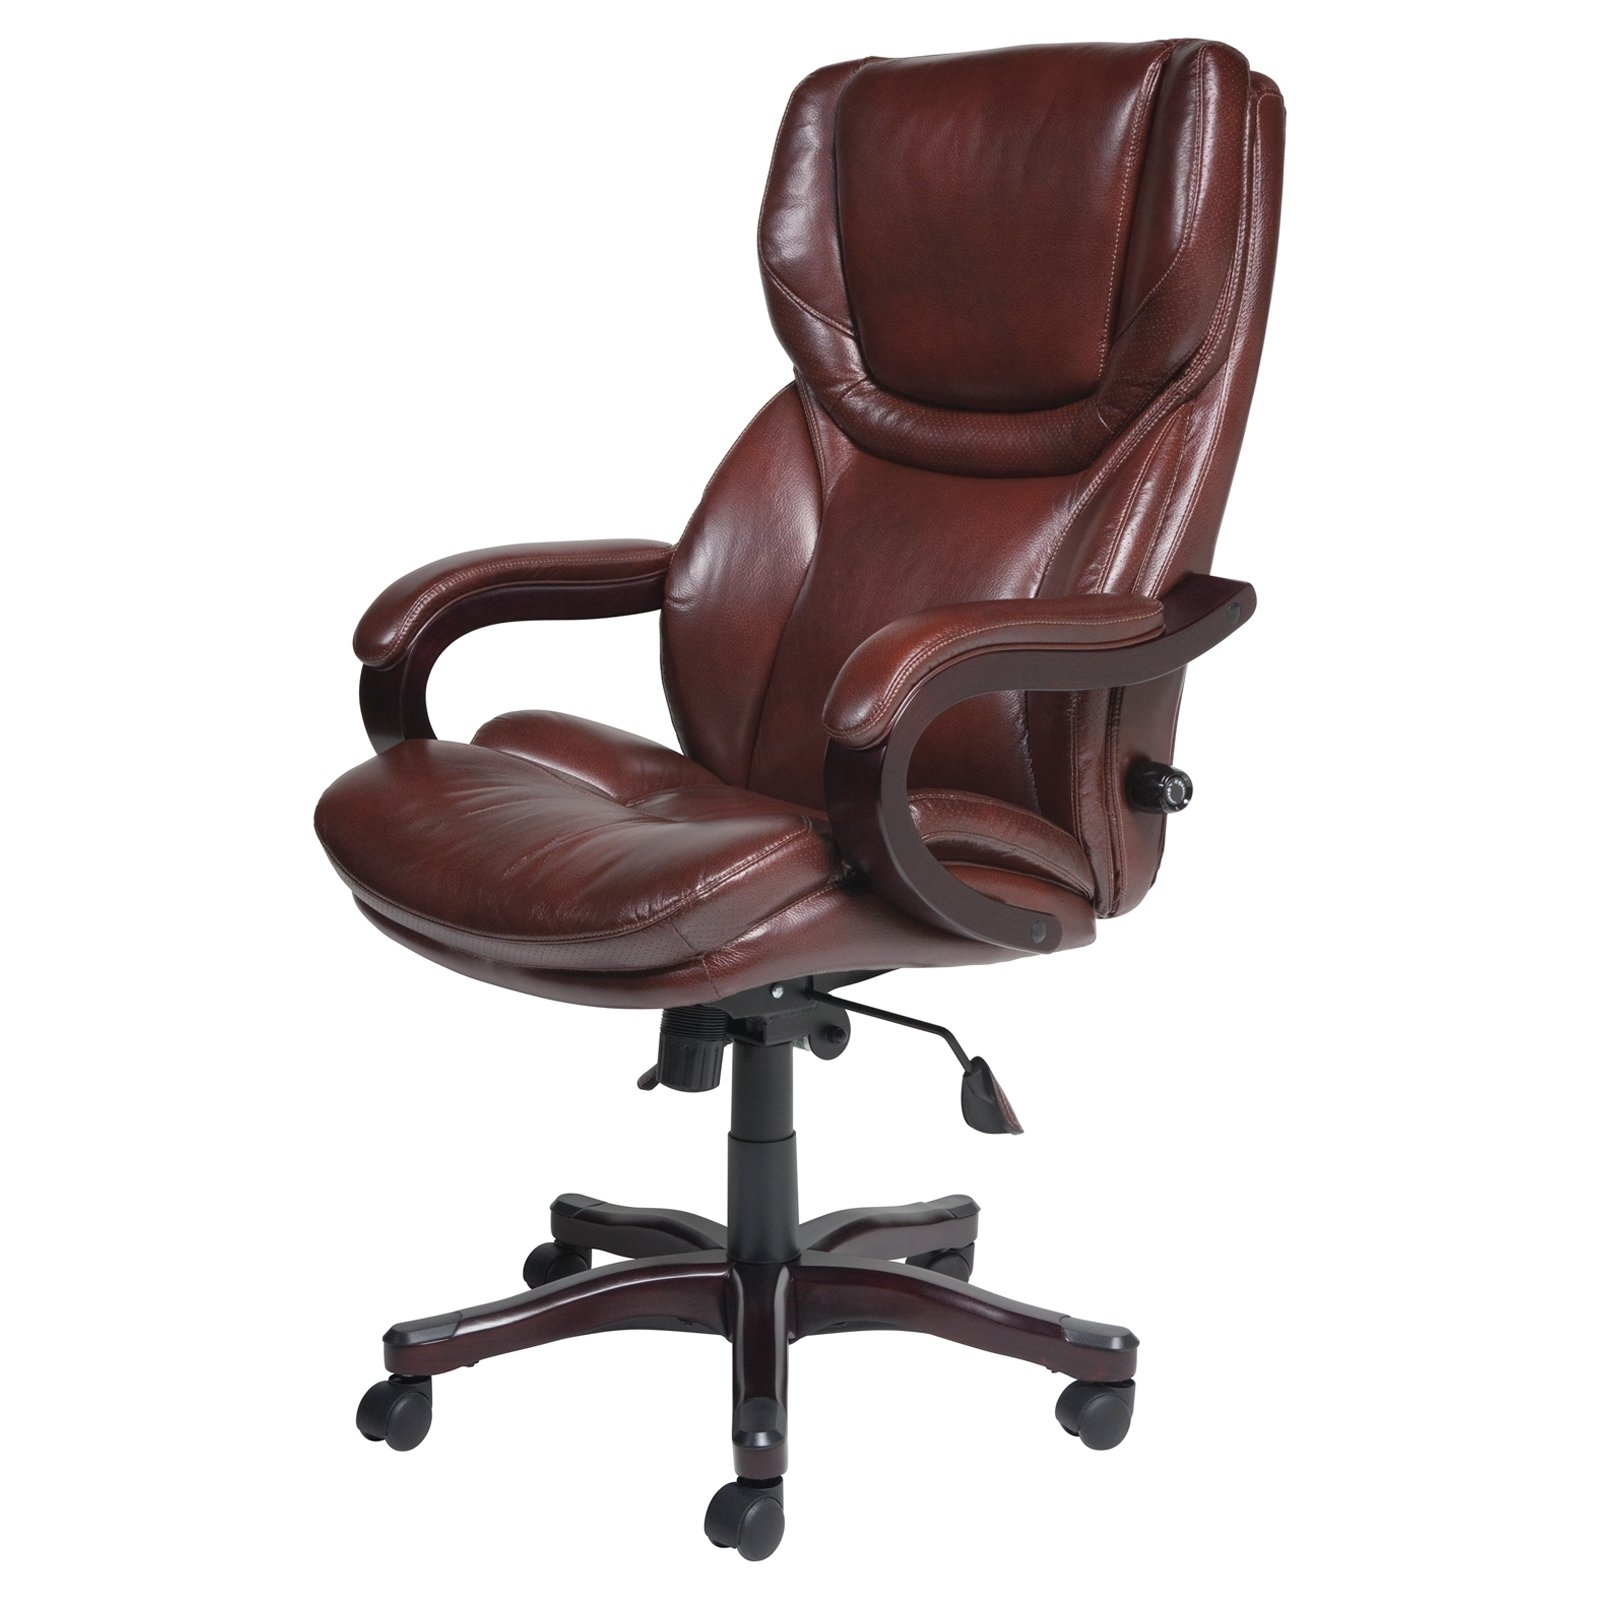 Leather Wood Executive Office Chairs Within Popular Chair : Ergonomic Black Leather Executive Office Chair Verona (View 9 of 20)